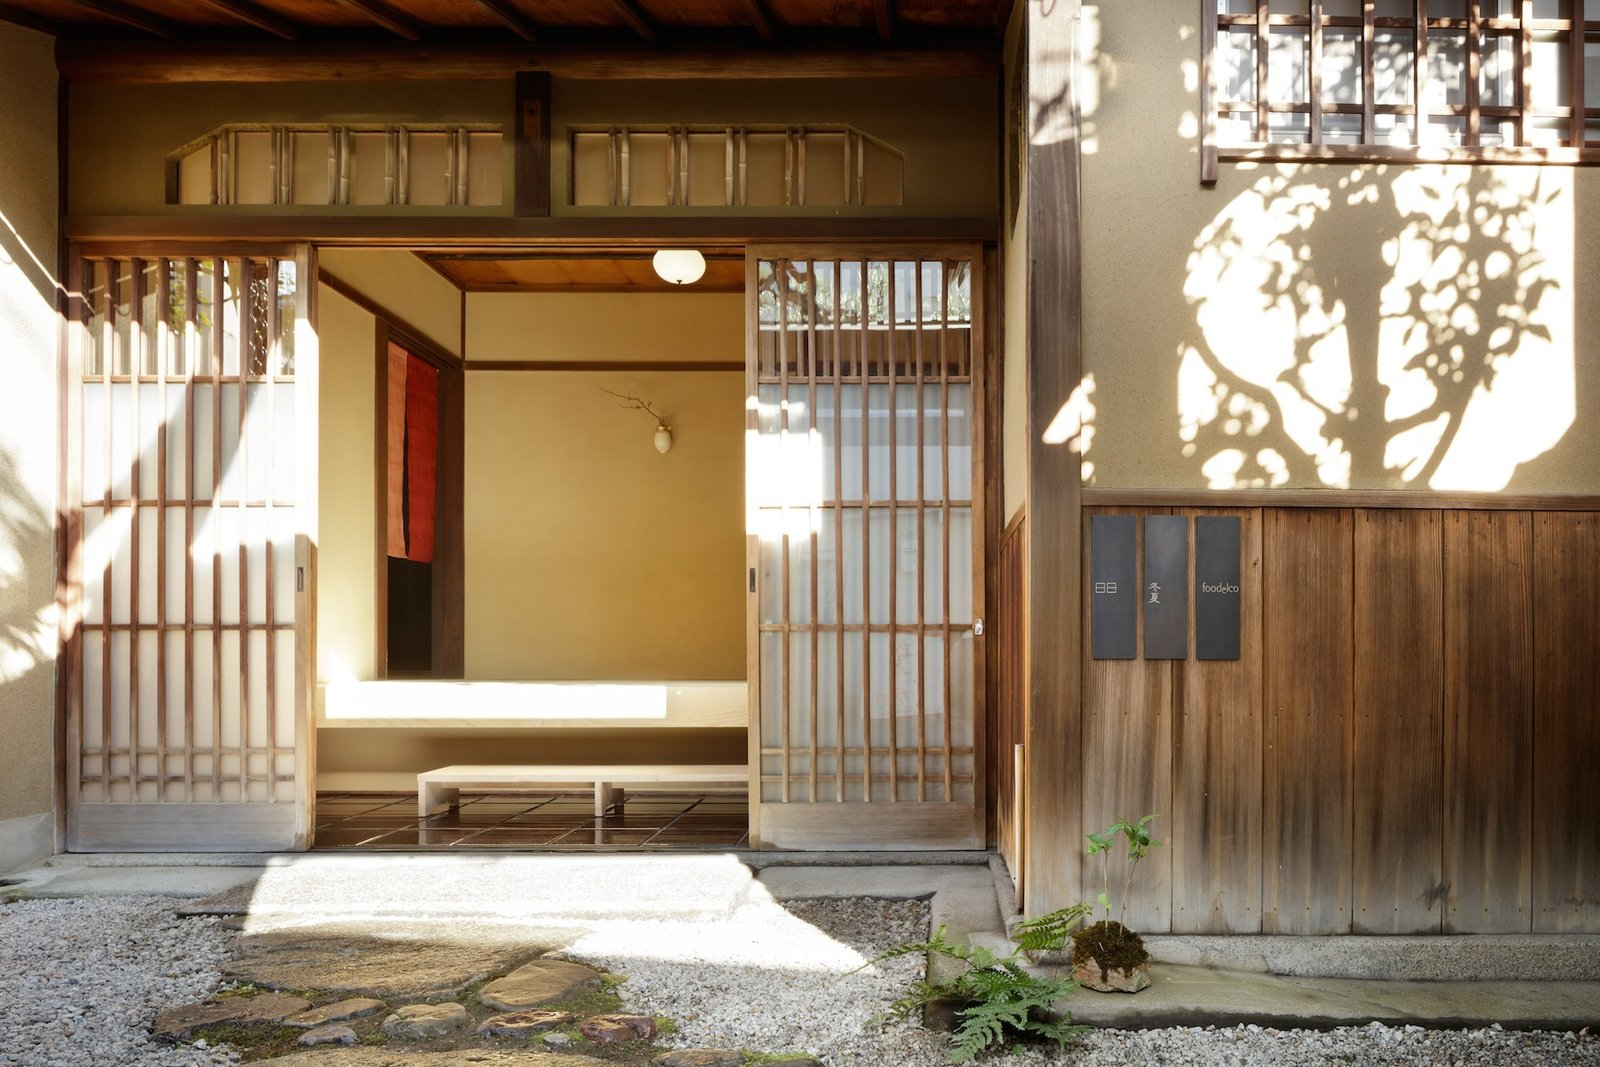 Fukoka-based firm CASE-REAL executed a renovation of the century-old residence in 2015, creating functional zones that would serve their clients' lifestyles and accommodate guests: a tea room, gallery space, office, and guest room. The modern aesthetics of the townhouse are surrounded by the thick, clay walls of a traditional Japanese warehouse, a rarity in historic memory in the neighborhood.  The thoughtfully detailed interior make for quiet, comfortable spaces that evoke a calming energy and look out at seasonal environments.   Tagged: Outdoor, Garden, Walkways, and Hardscapes.  Photo 4 of 13 in A Minimalist Townhouse Provides Serene Accommodations in Historic Kyoto